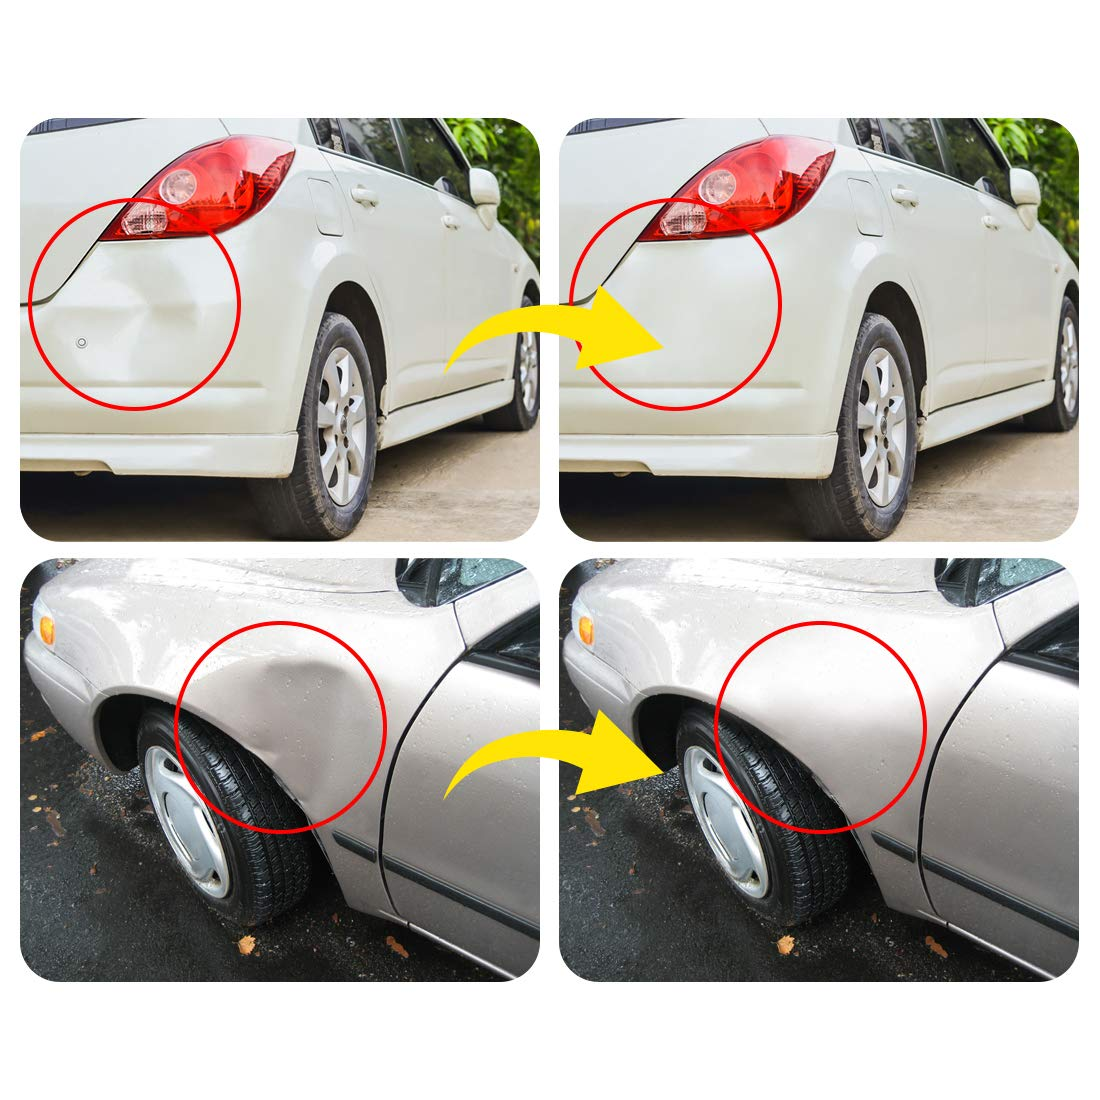 Minor Dent and Deep Dent Removal Manelord Auto Body Dent Repair Kit Car Dent Puller with Golden Dent Puller for Auto Body Dent Removal